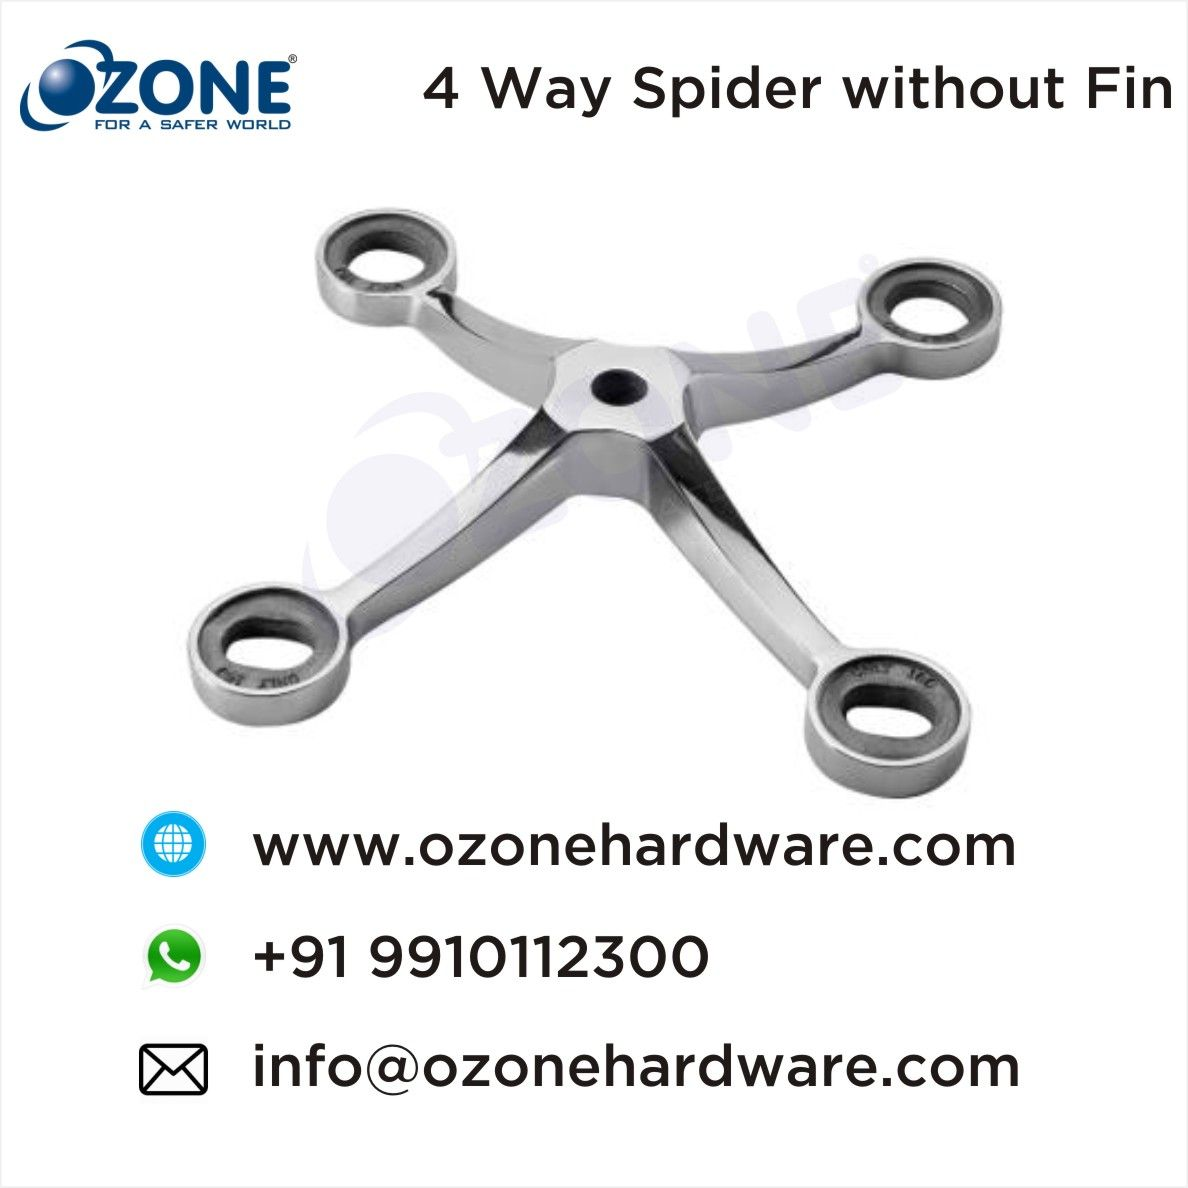 4 Way Spider without Fin, Spider & Canopy Fittings, Without